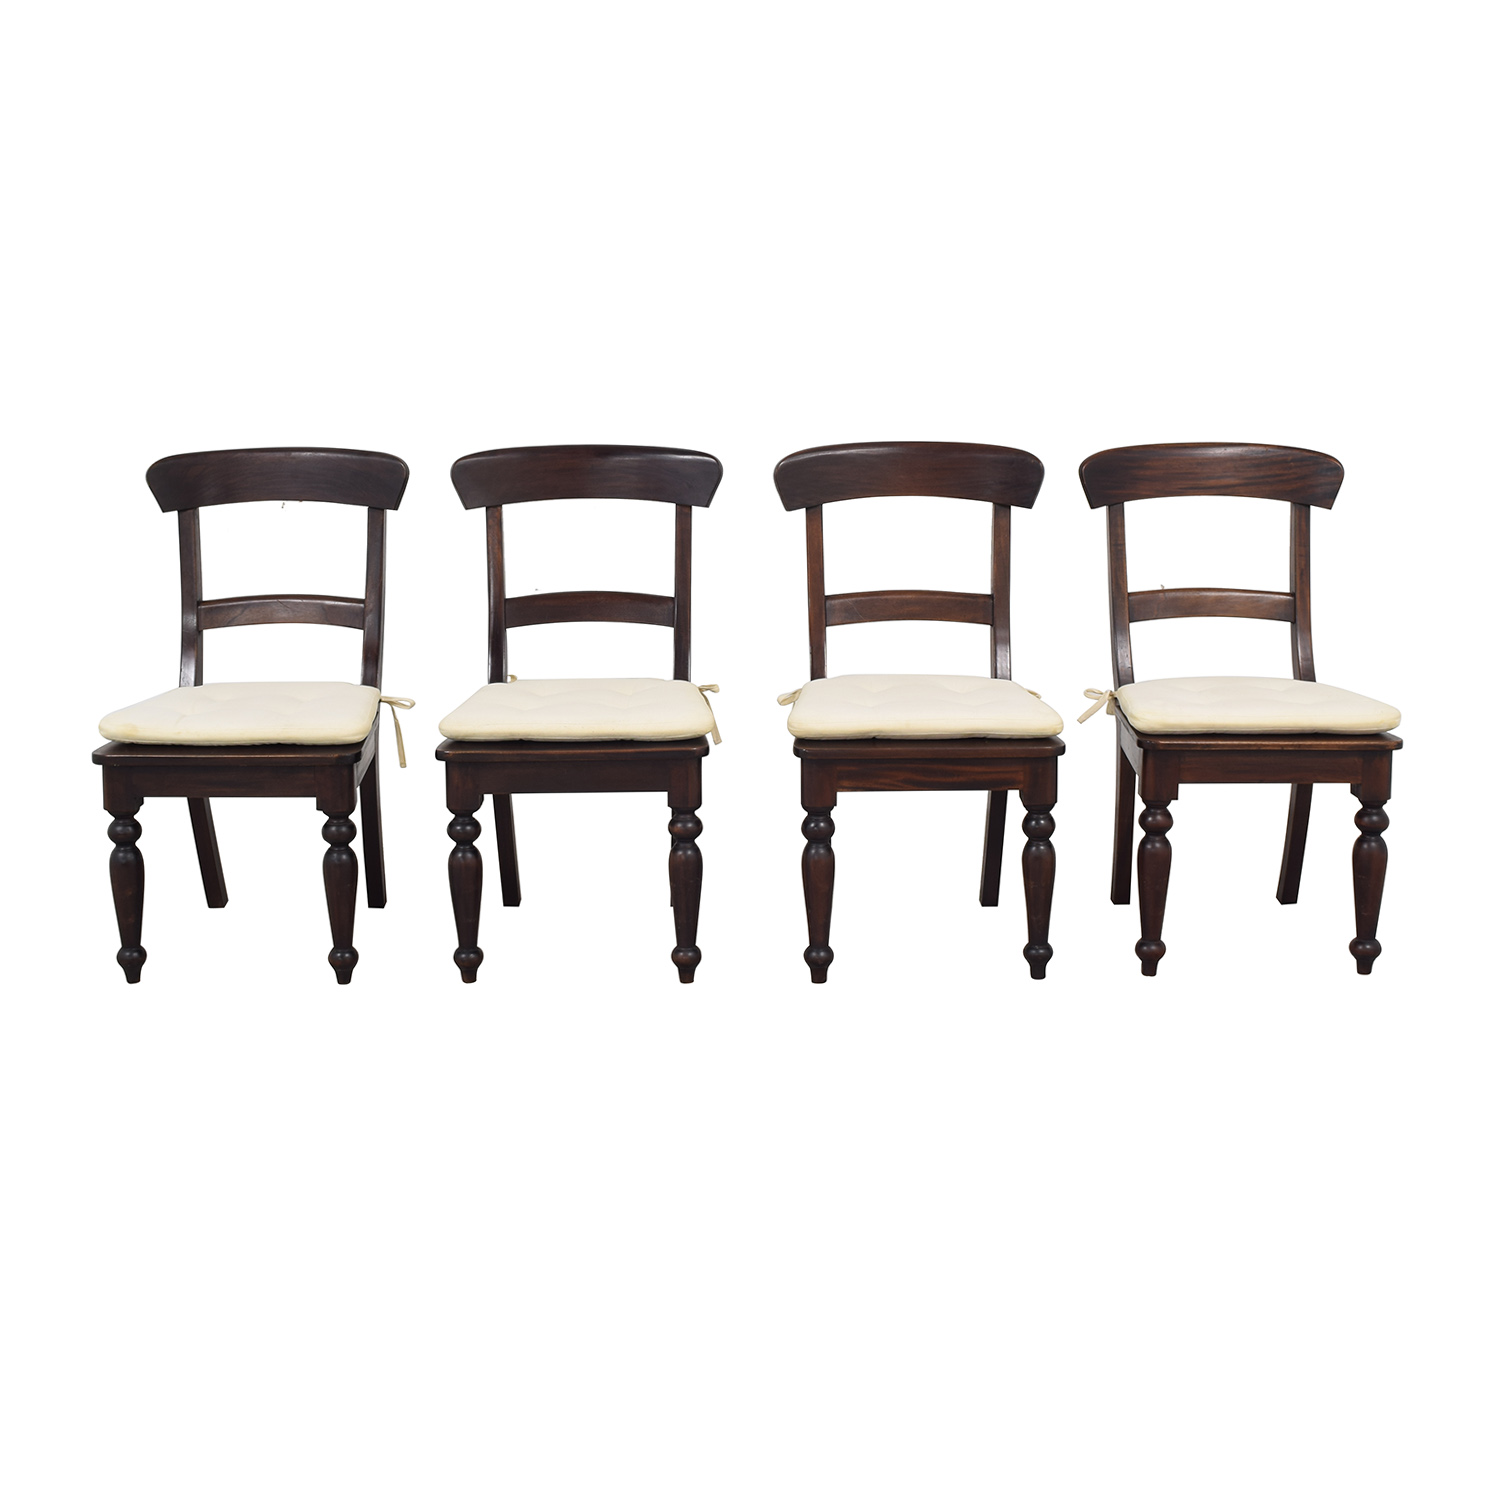 shop Crate & Barrel Farmhouse Dining Chairs Crate & Barrel